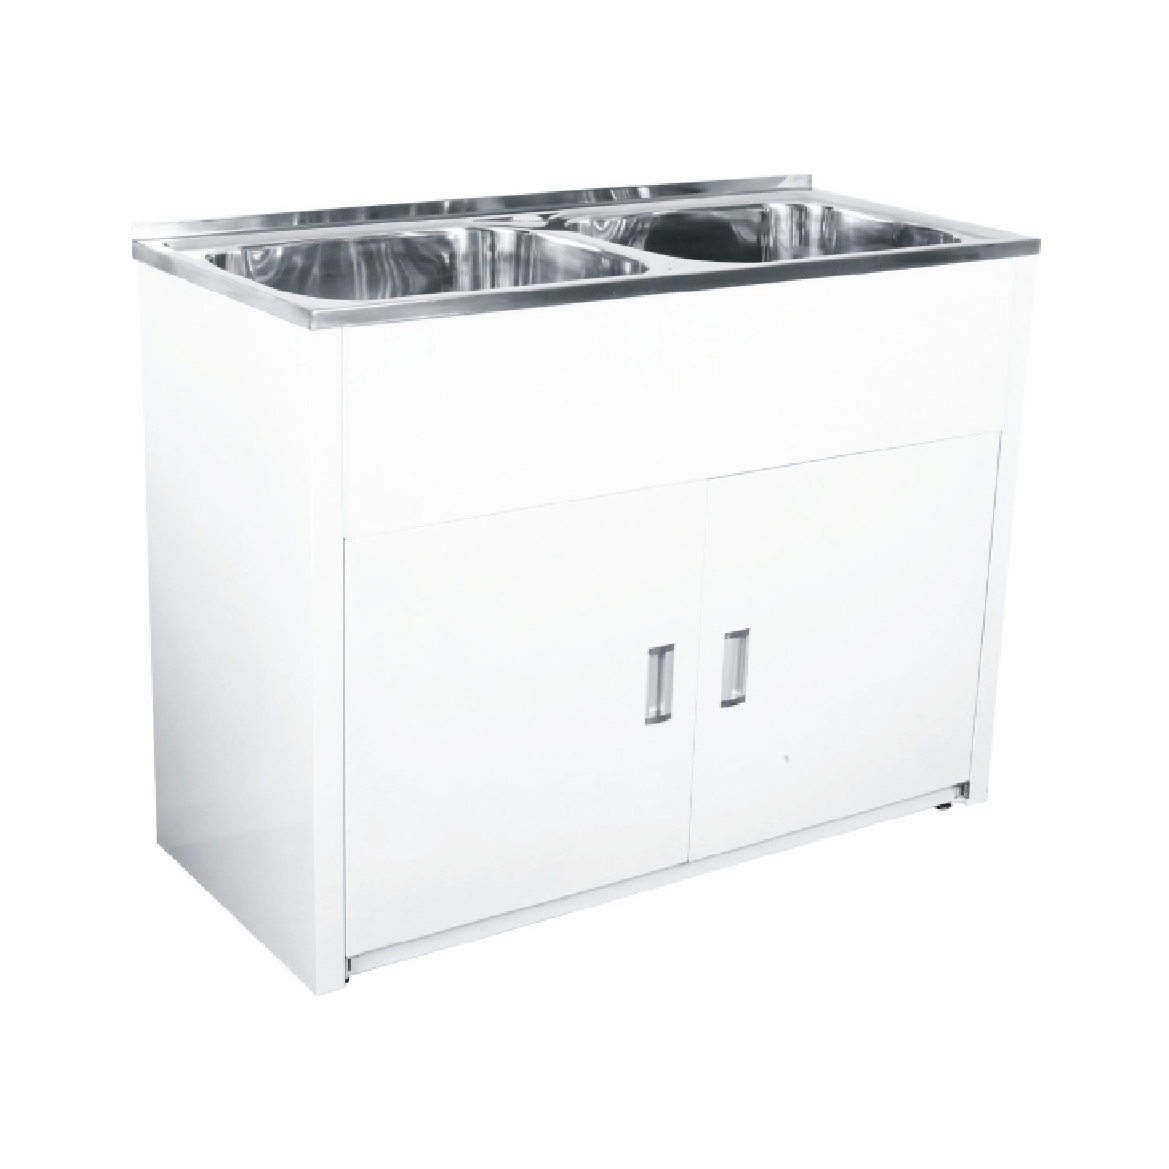 Beau Double Laundry Tub With Cabinet U2013 45L